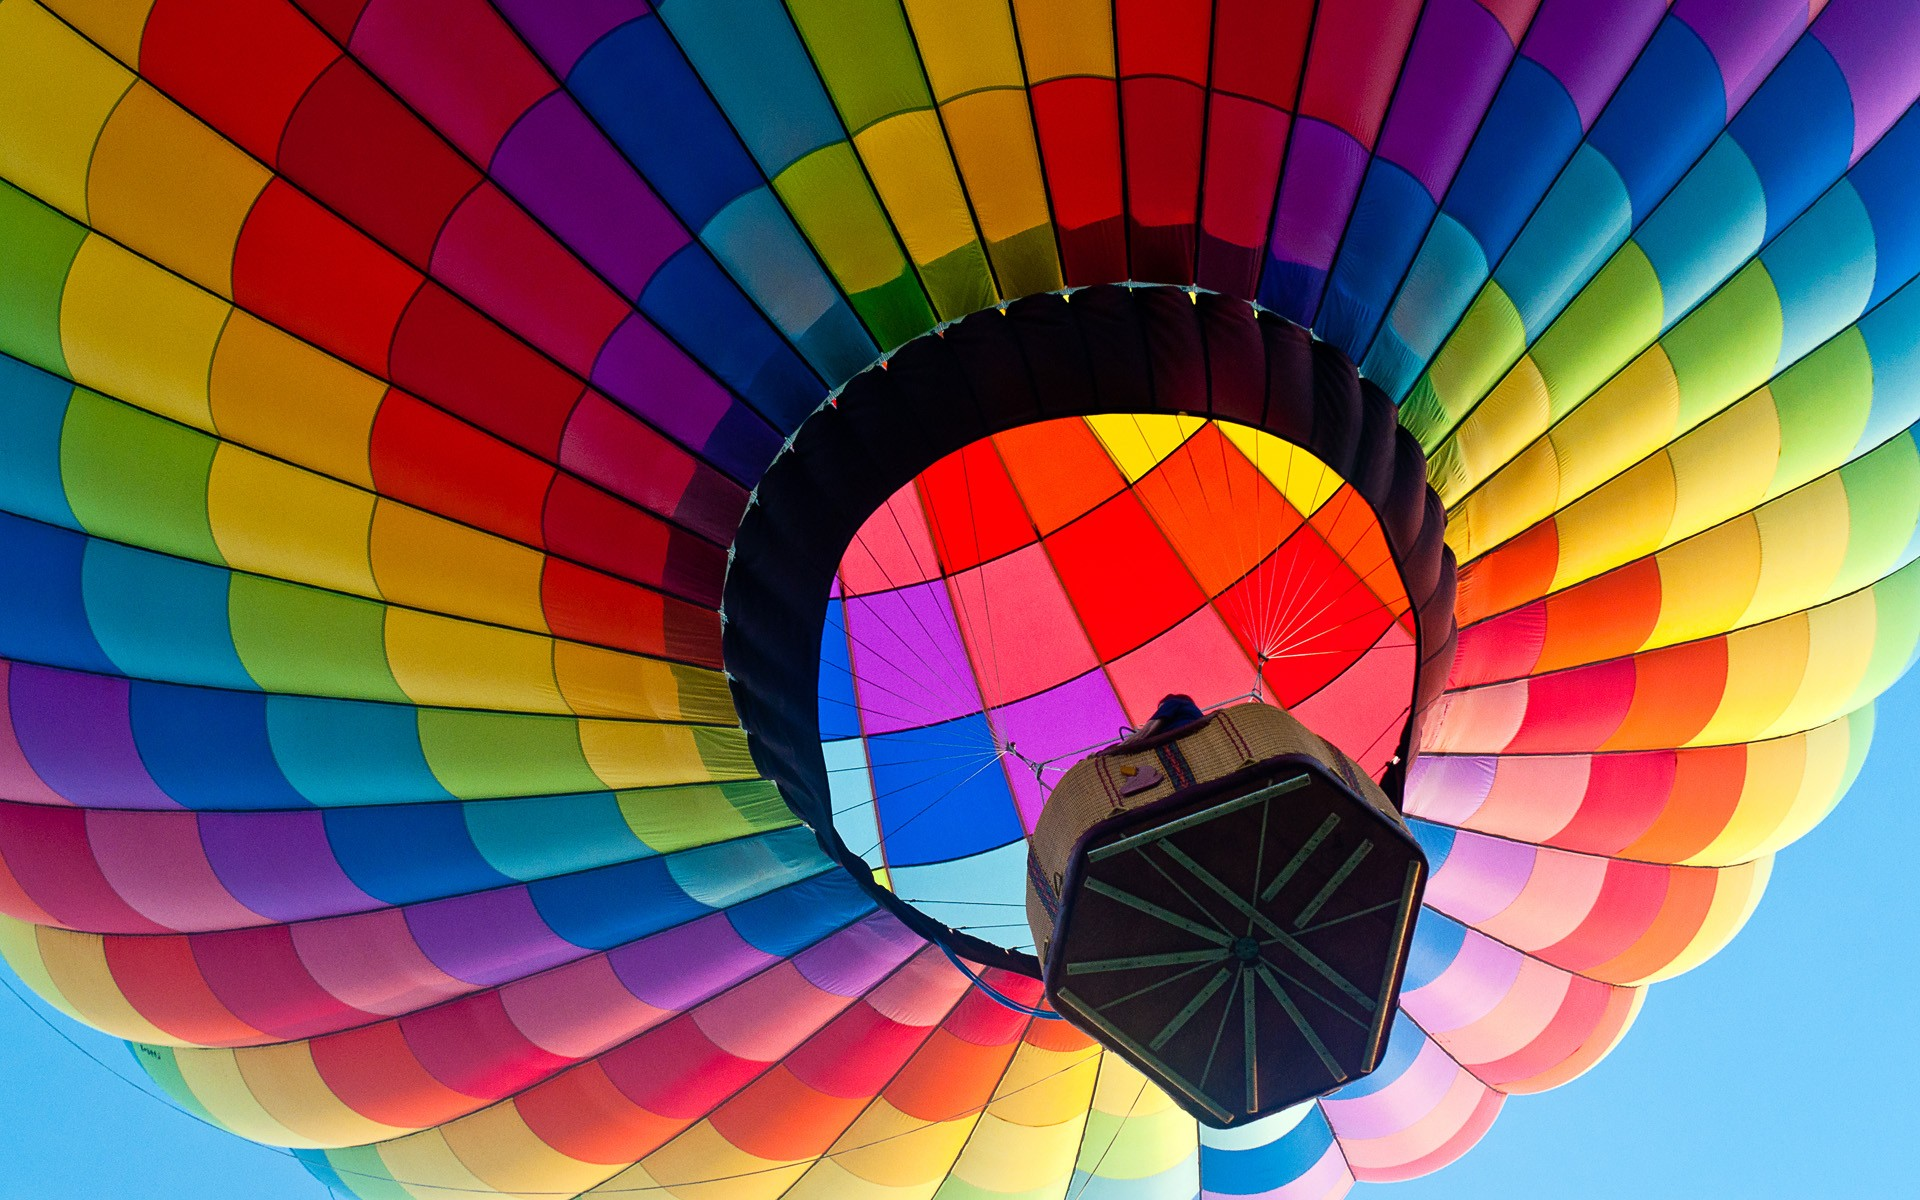 Hot Air Balloon 3 Hd Others 4k Wallpapers Images Backgrounds